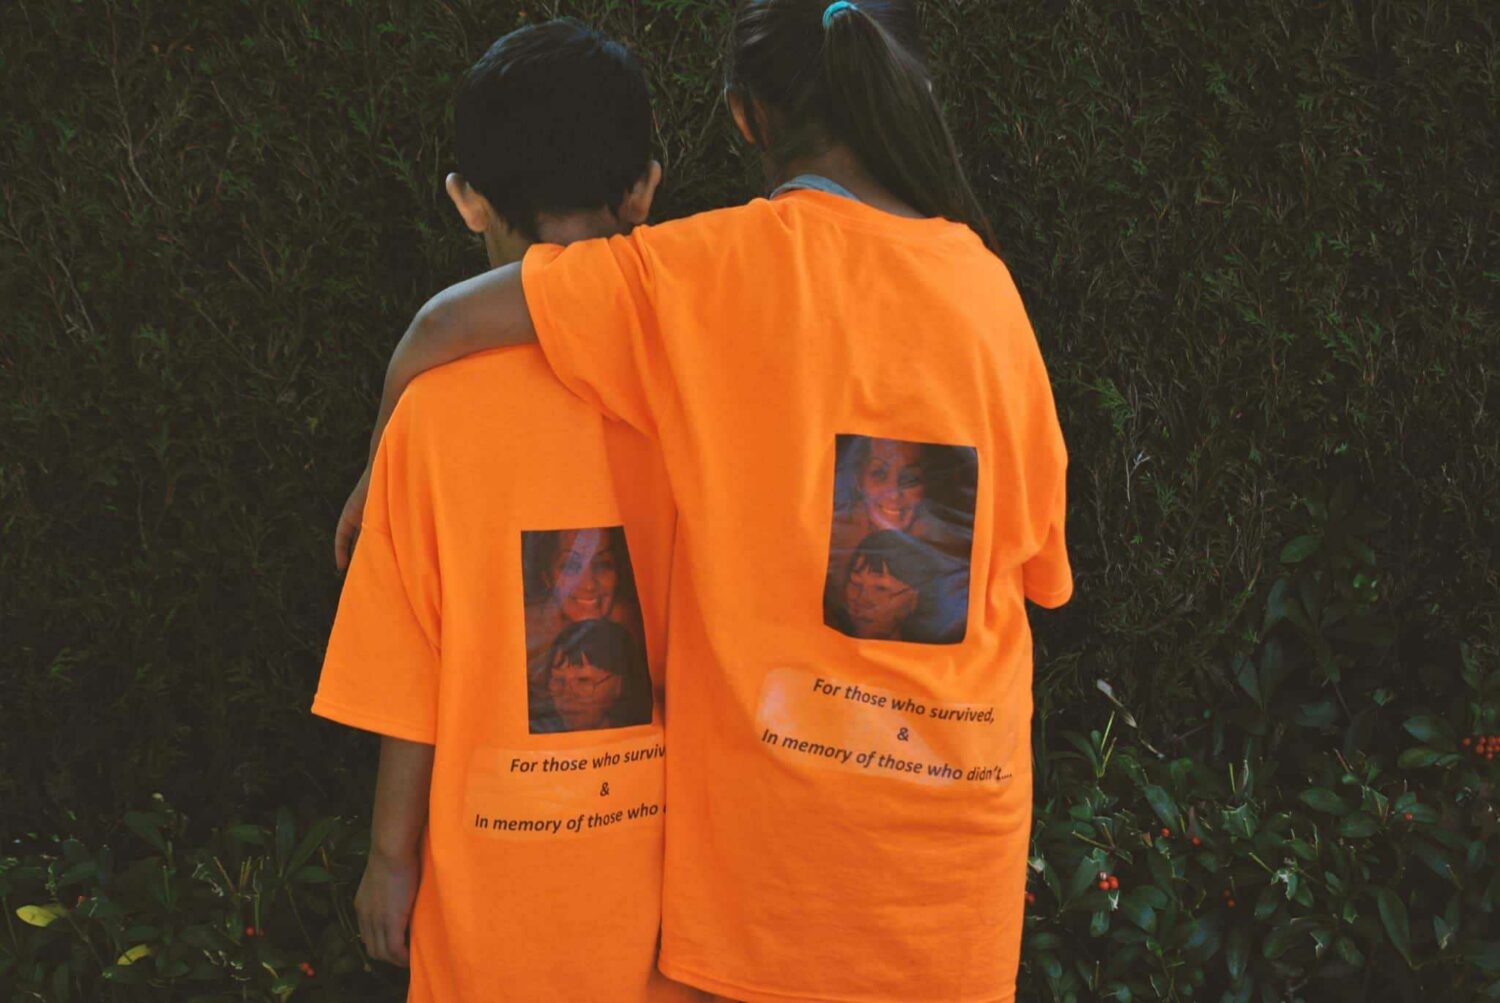 """Two children, one with arm around the other facing away, wearing orange t-shirts that read """"For those who survived & in memory of those who didn't"""""""